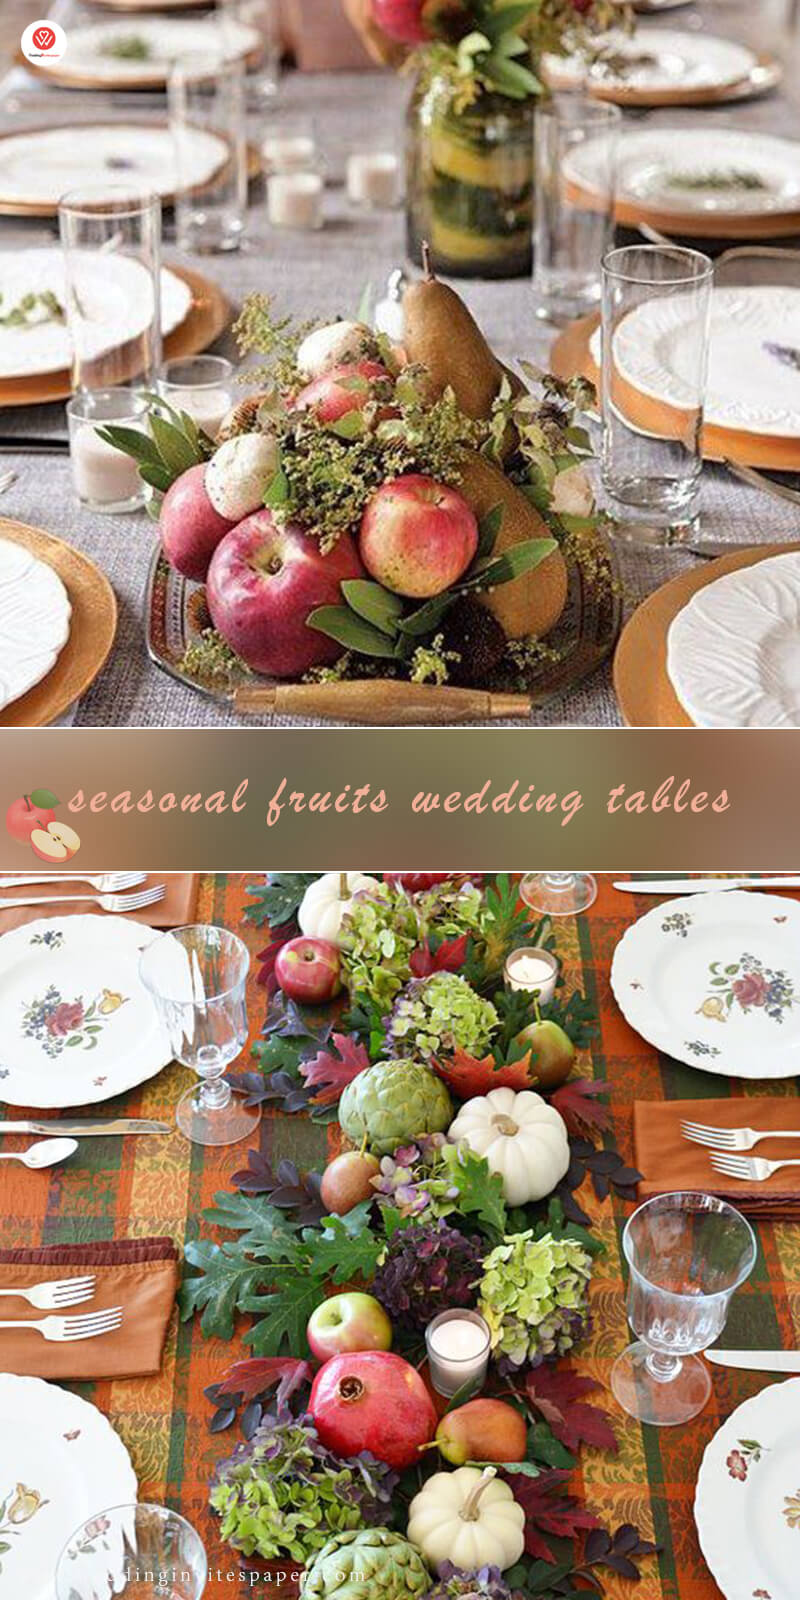 7 seasonal fruits  wedding tables.jpg